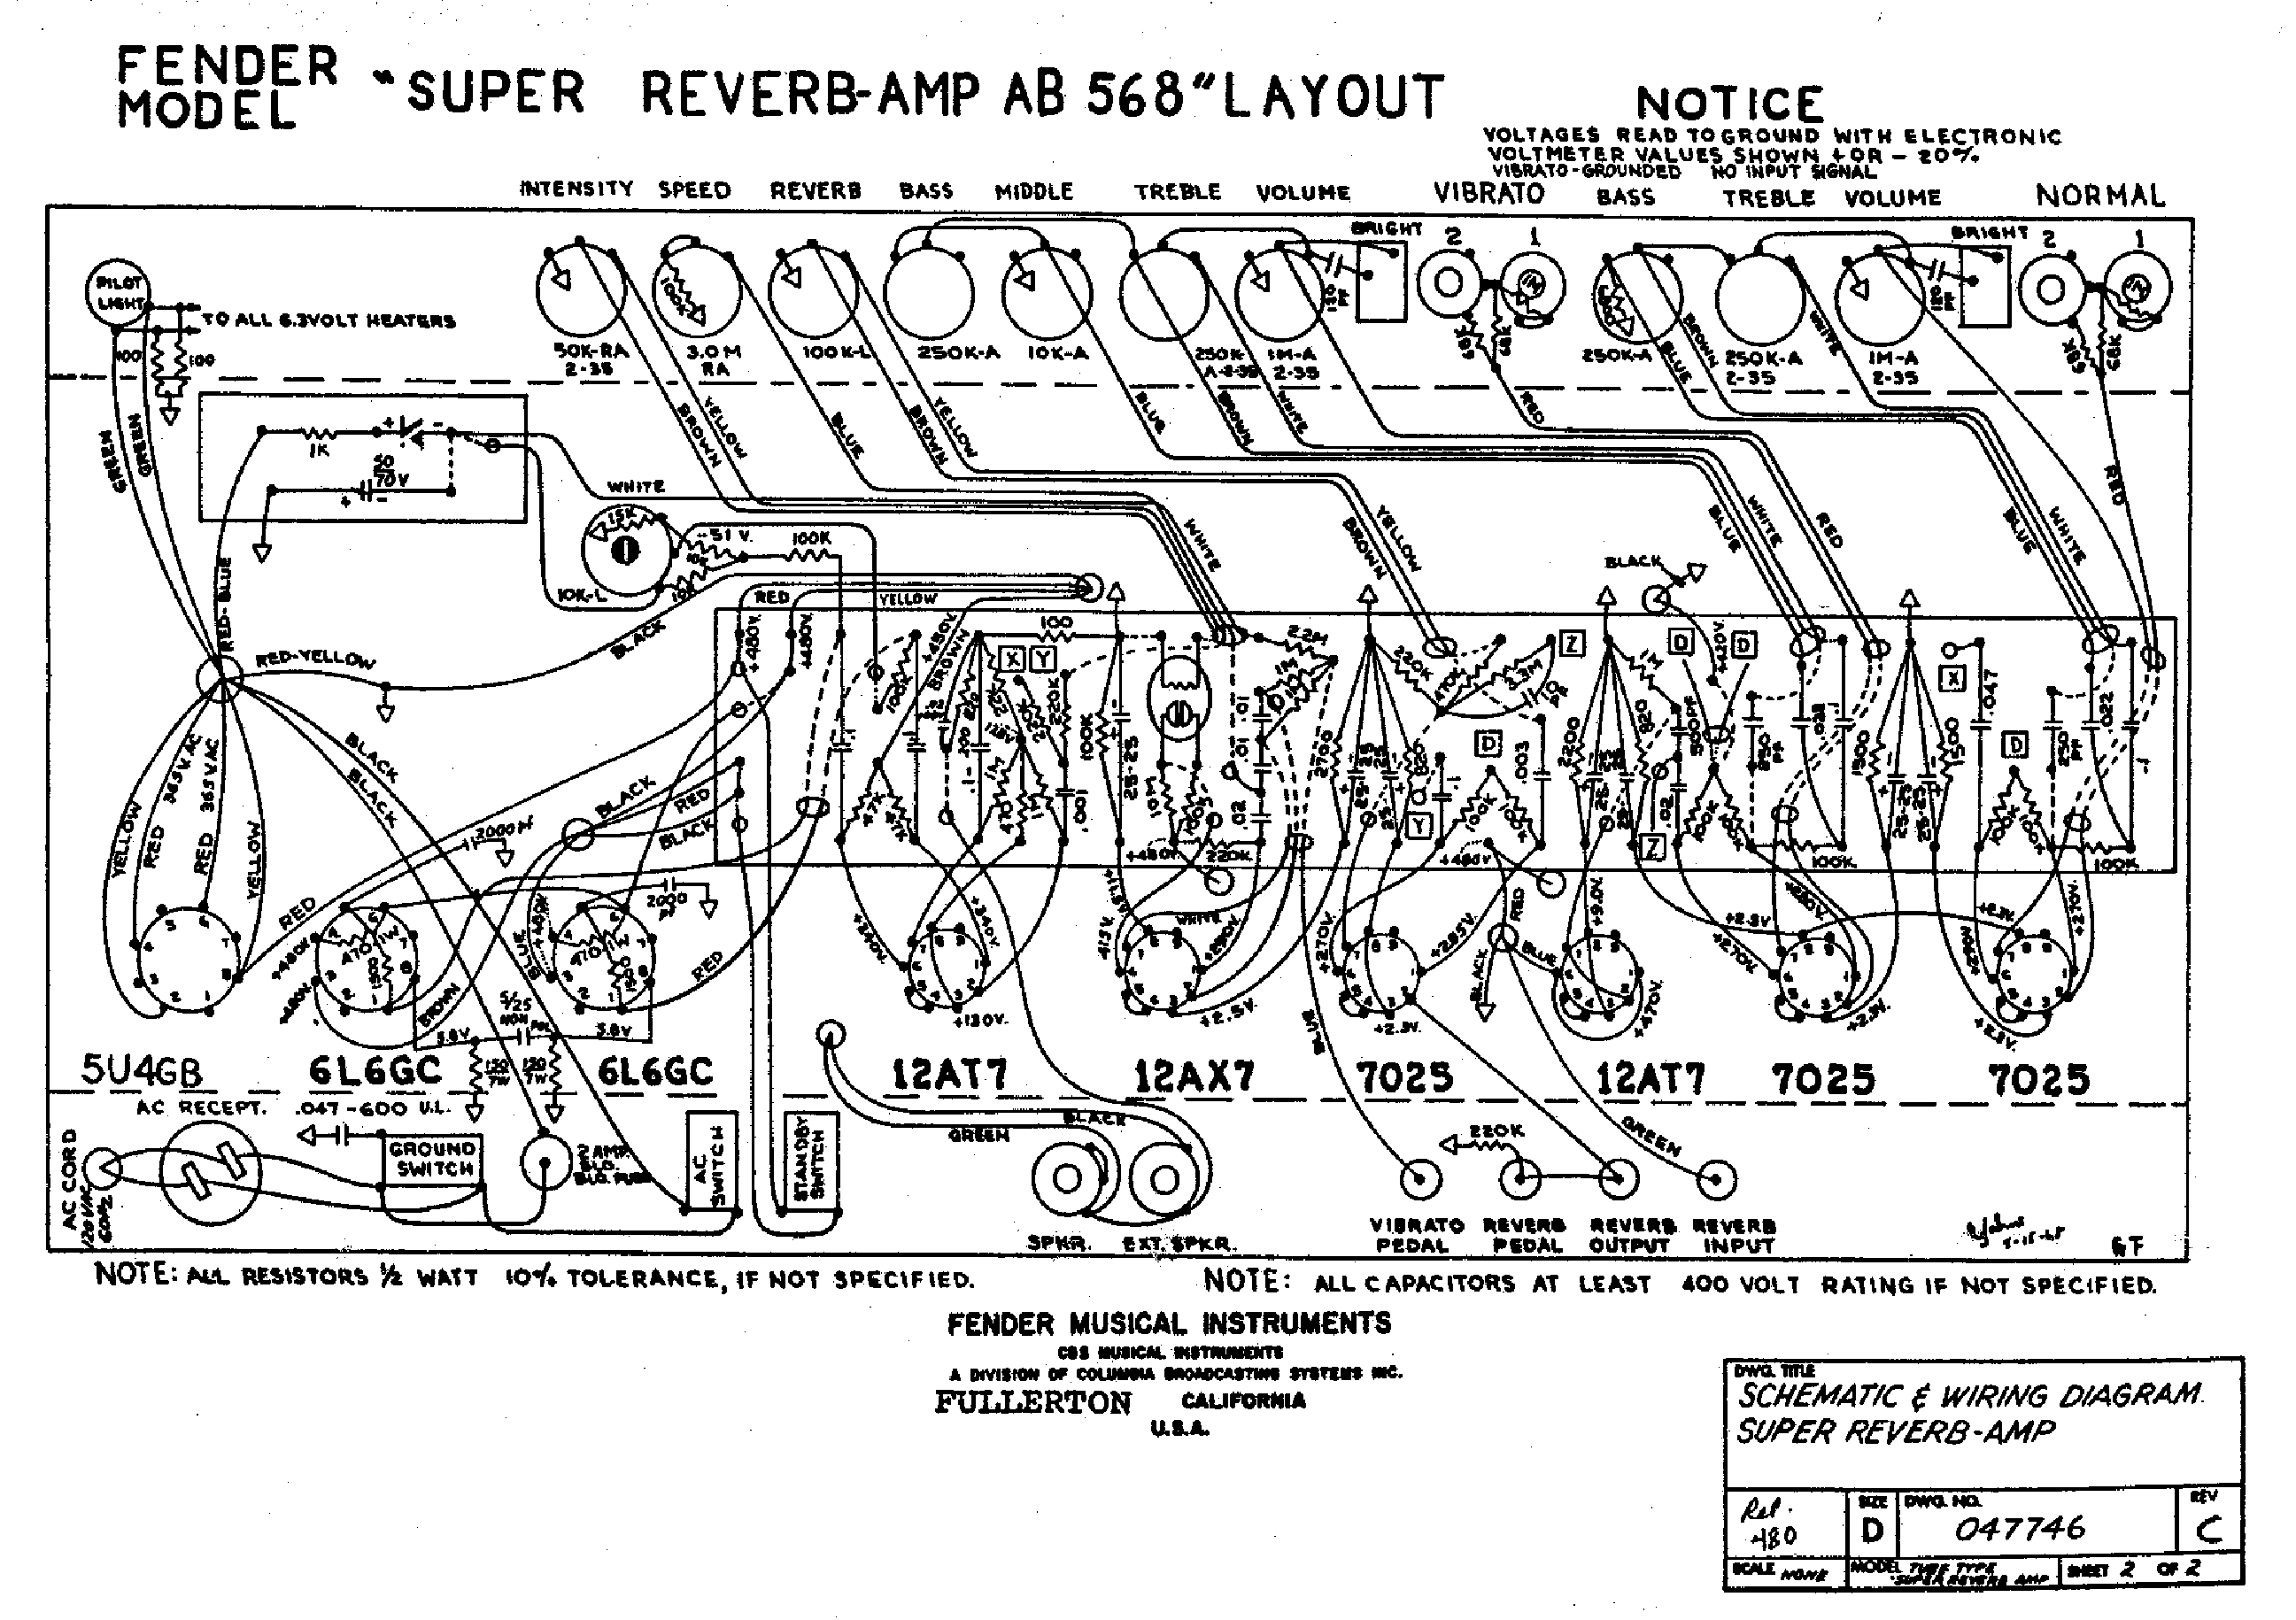 FENDER TWIN REVERB AA270 SCH Service Manual download